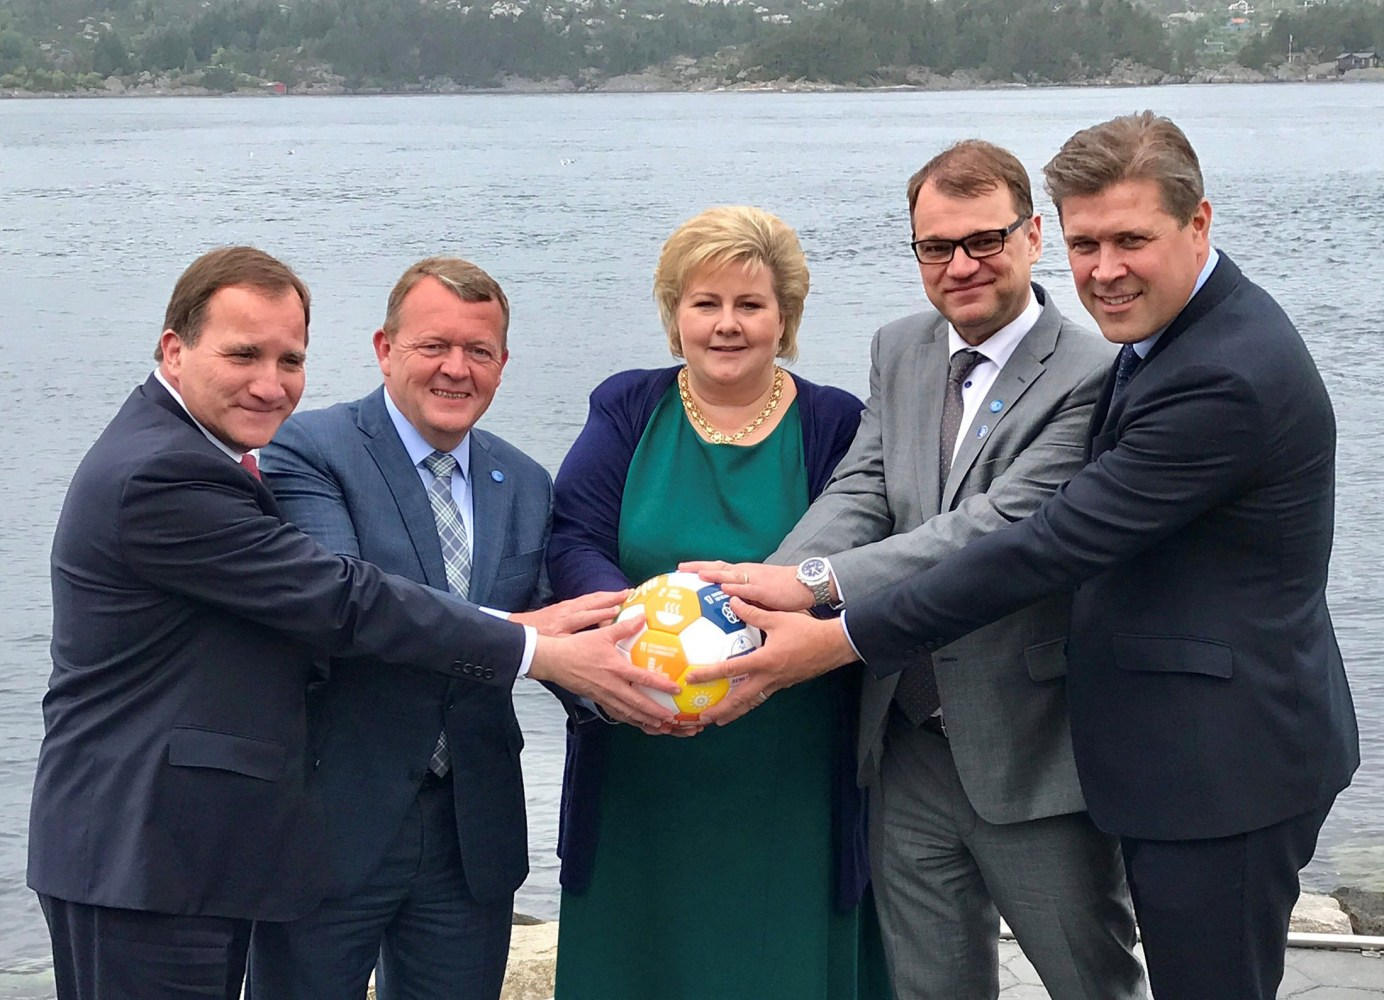 Nordic leaders clutch soccer ball in hopes of going viral